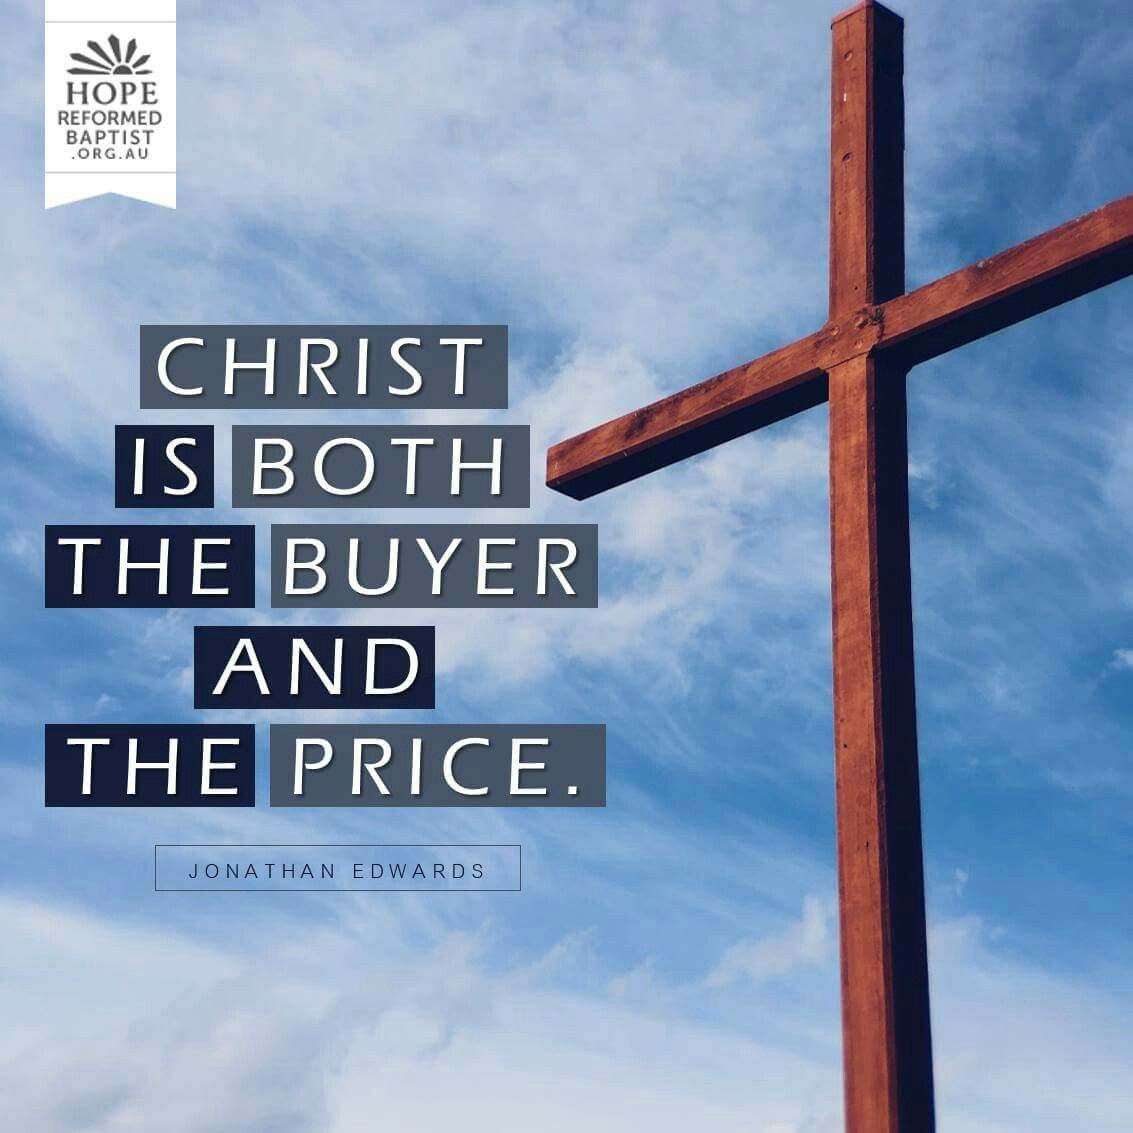 Jonathan Edwards Quotes Christian Quotes  Jonathan Edwards Quotes  Christ  Reformed